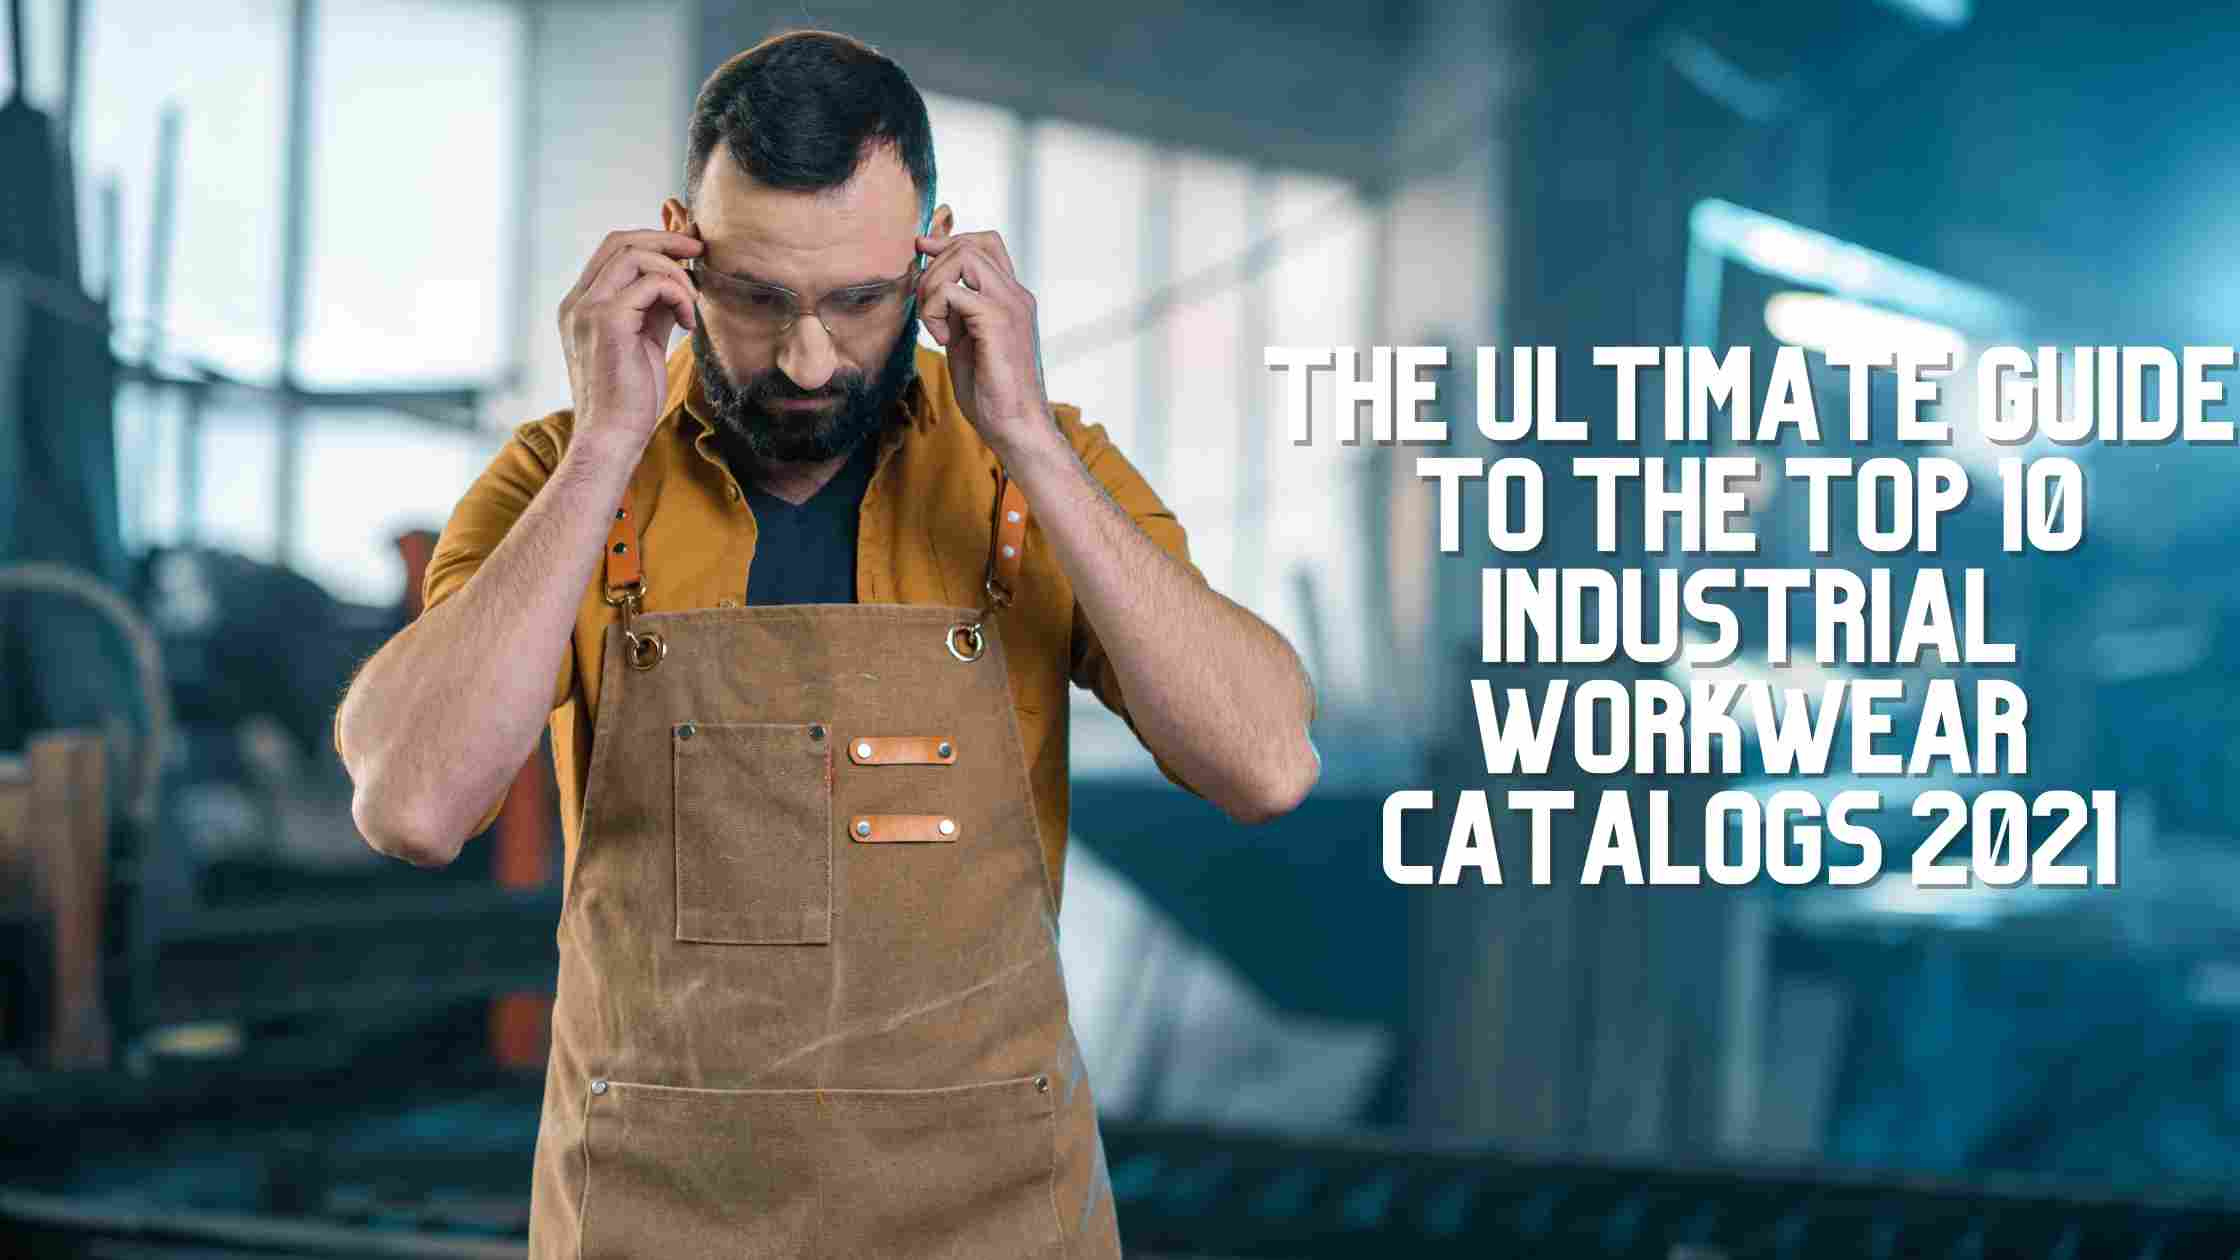 Ultimate guide to Industrial catalogs 2021